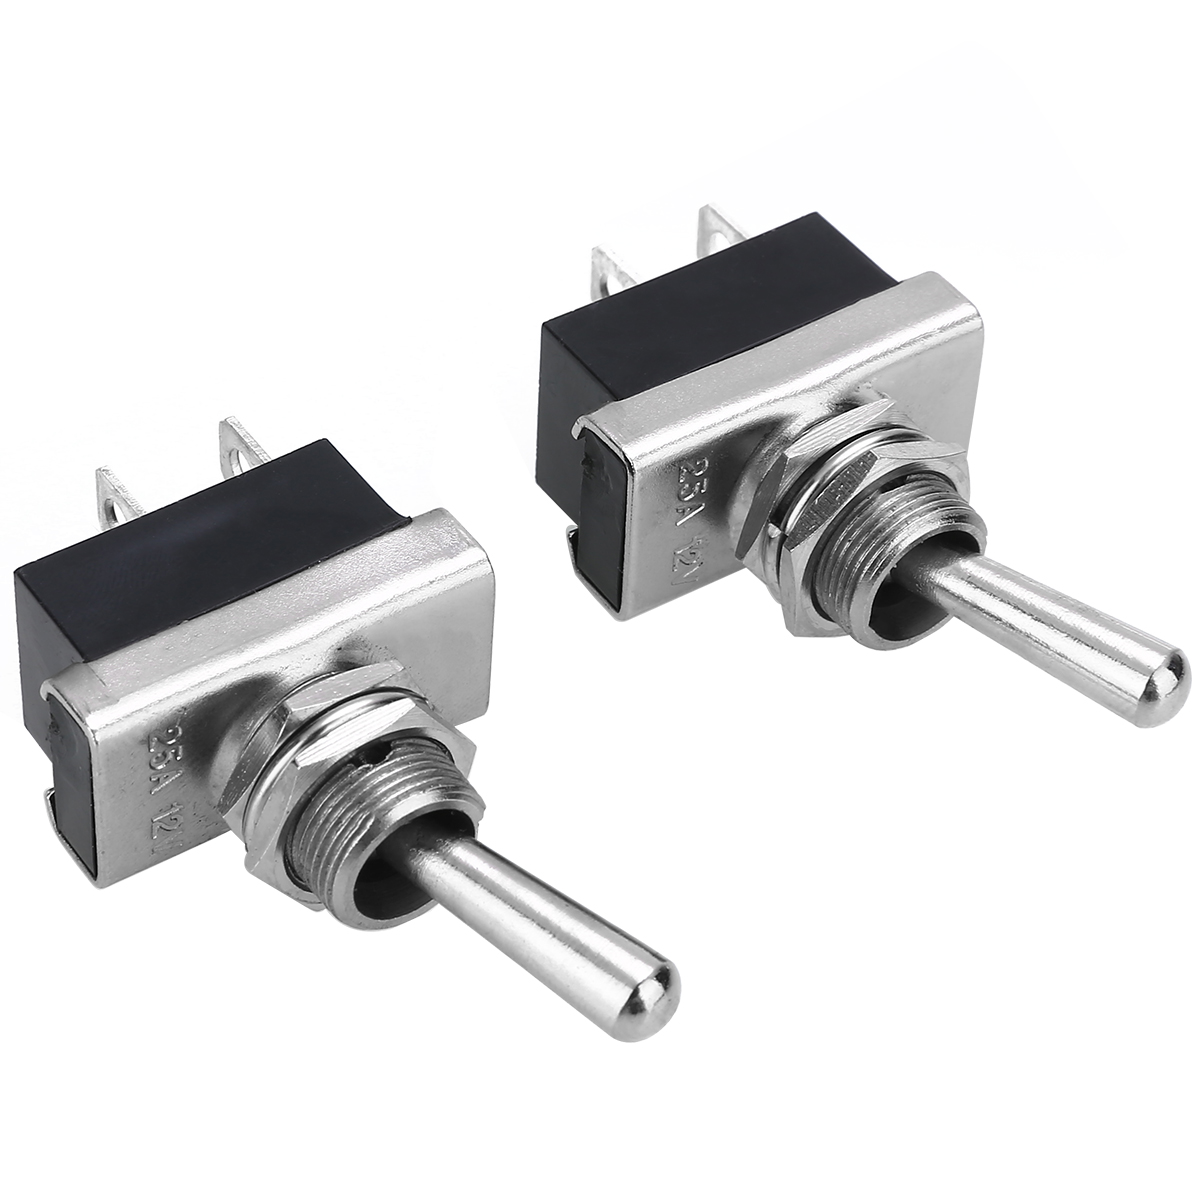 2pcs Heavy Duty Toggle Mechanism Flick Switch 12V 25A Waterproof Toggle Switches Auto Boat Marine Use